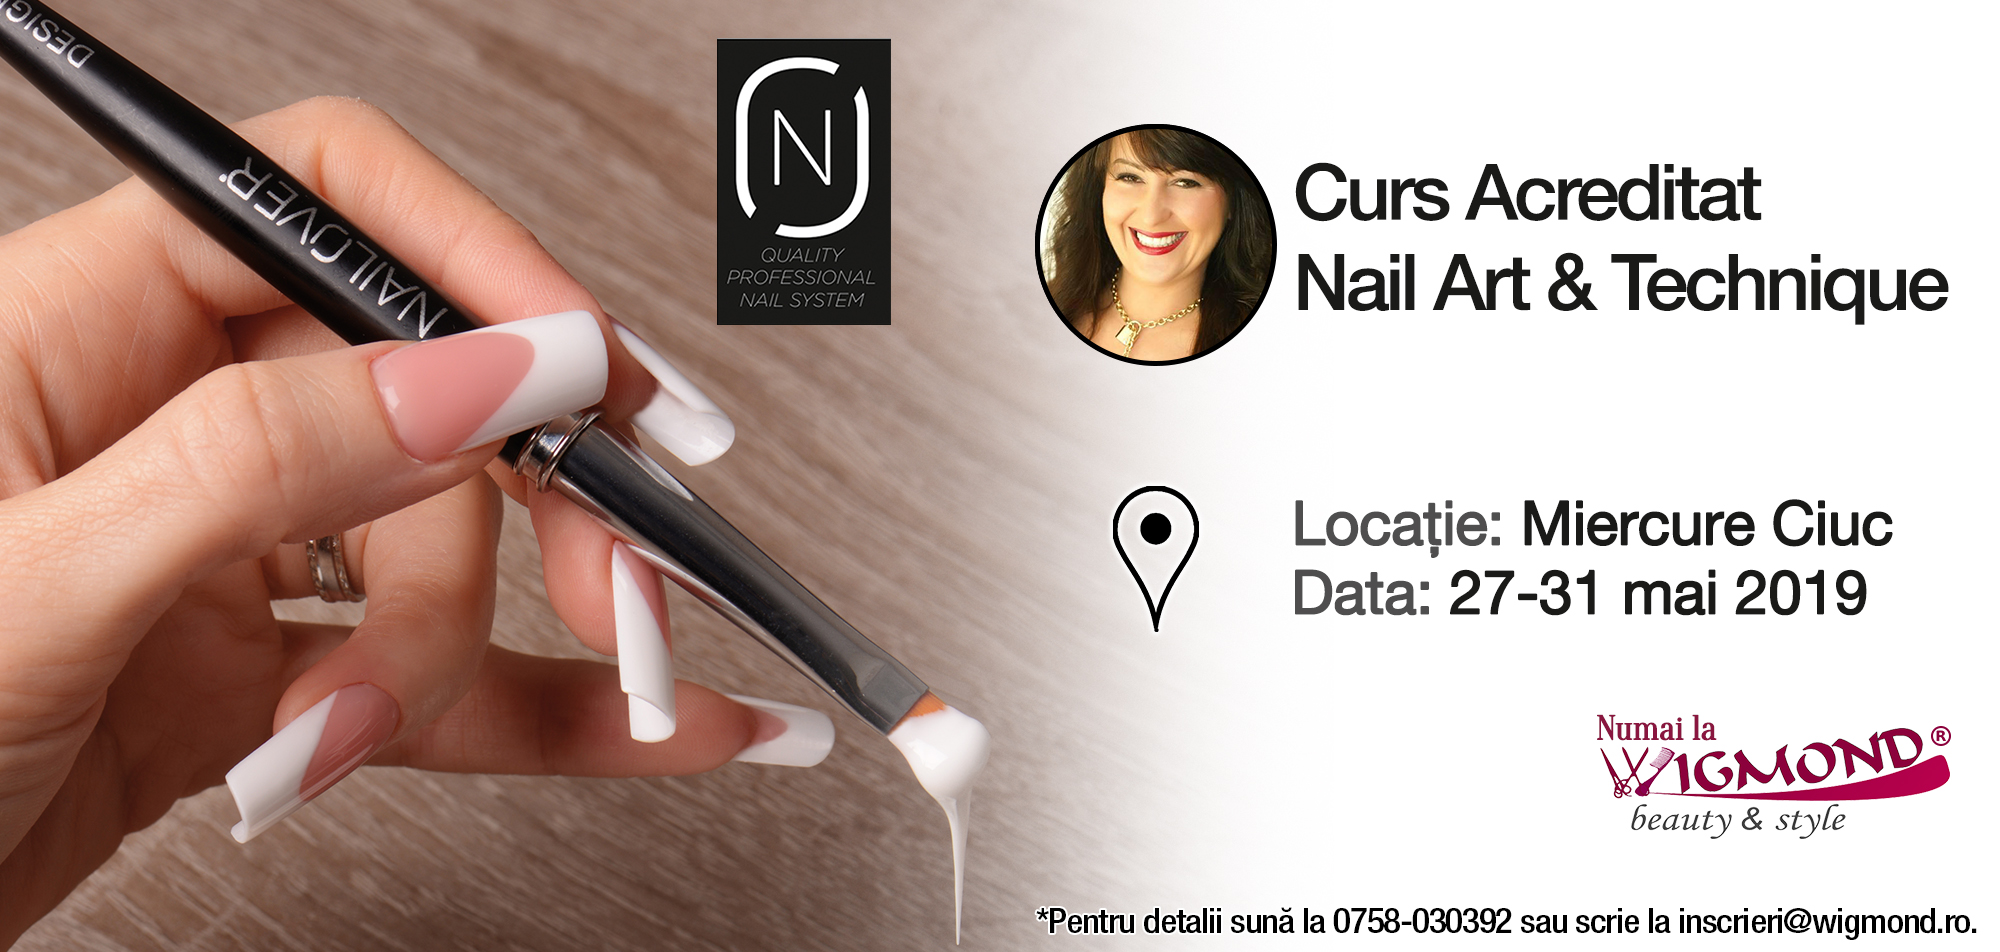 Cursul acreditat nail art Nailover Hanko MC 27-31 mai 2019